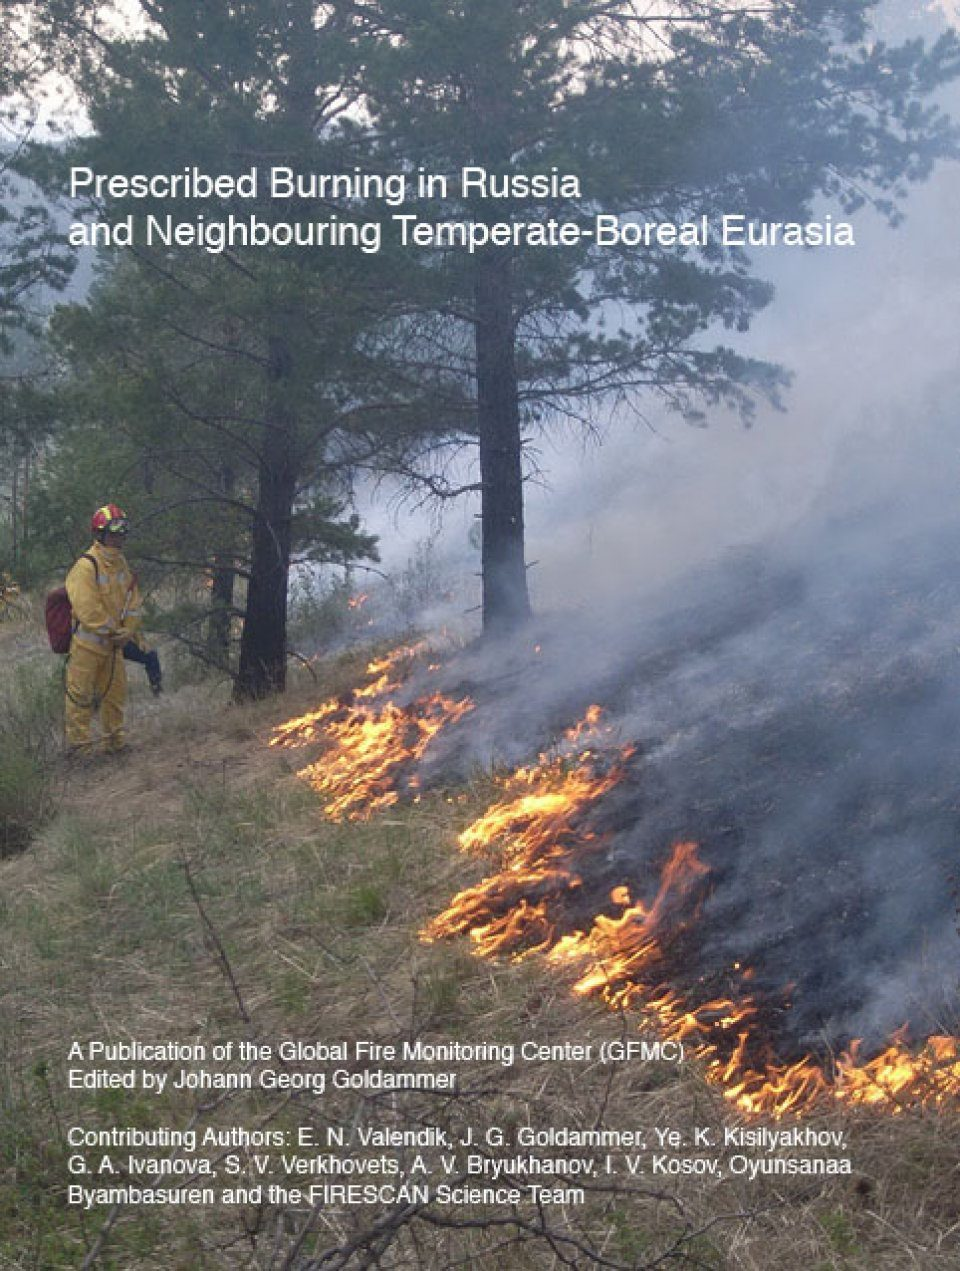 Prescribed Burning in Russia and Neighbouring Temperate-Boreal Russia